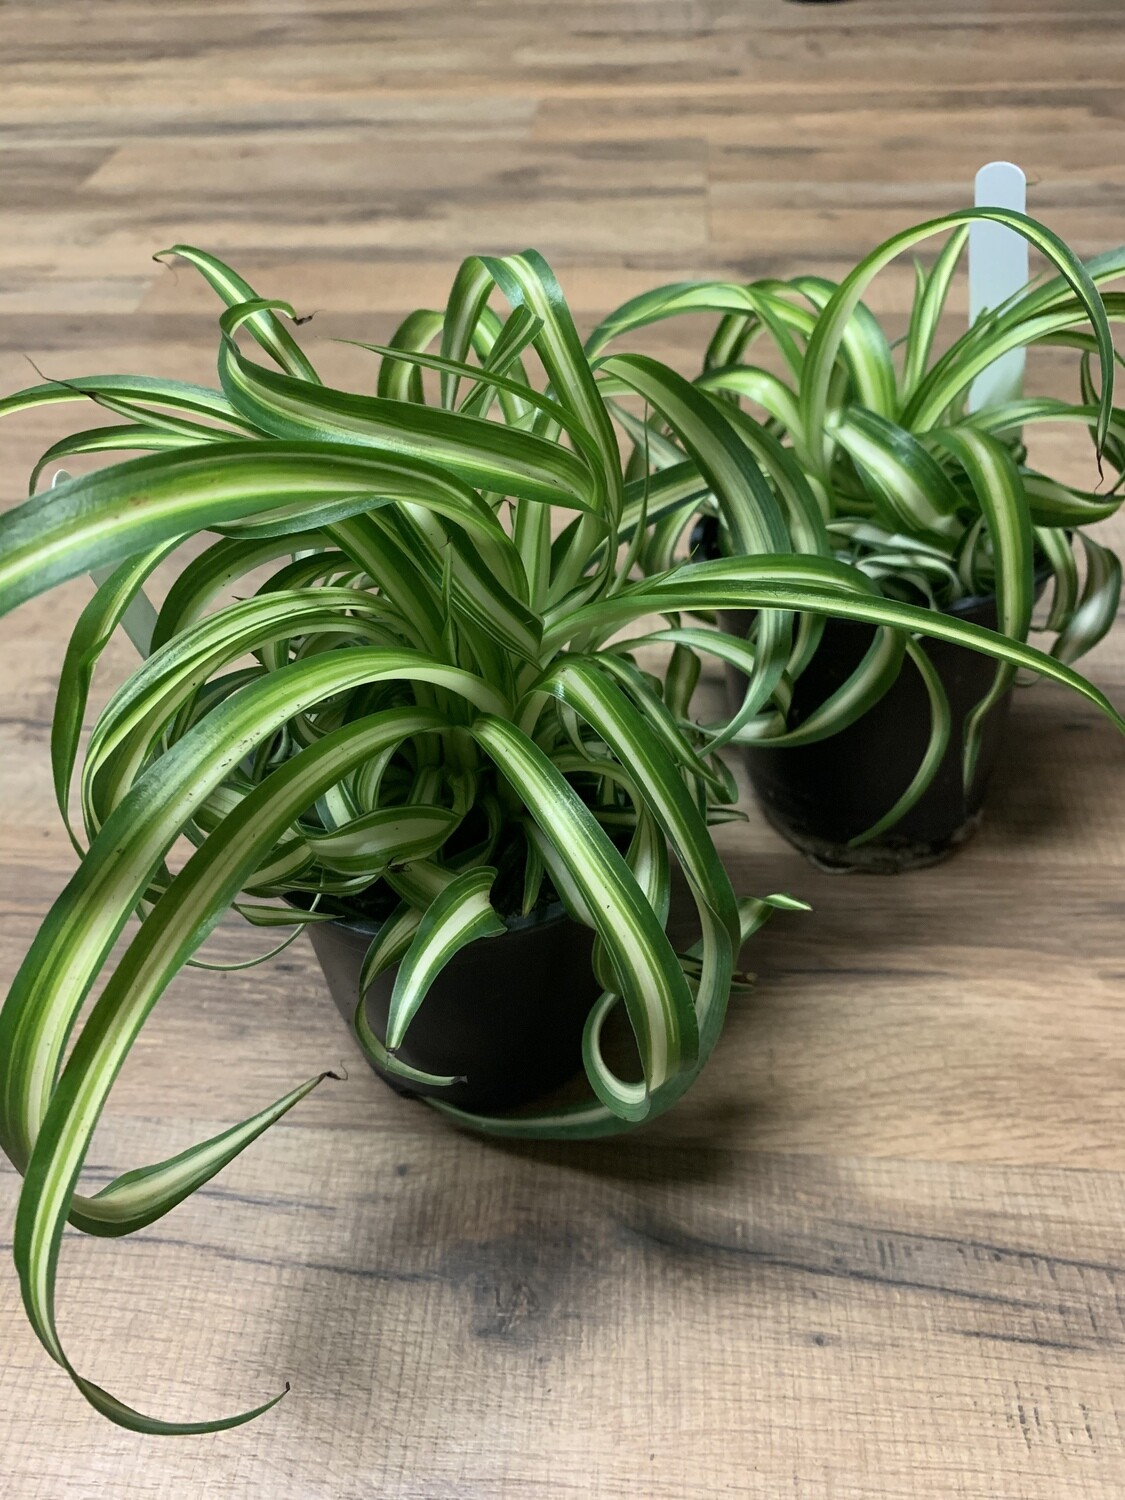 Spider Plant 'Curly'